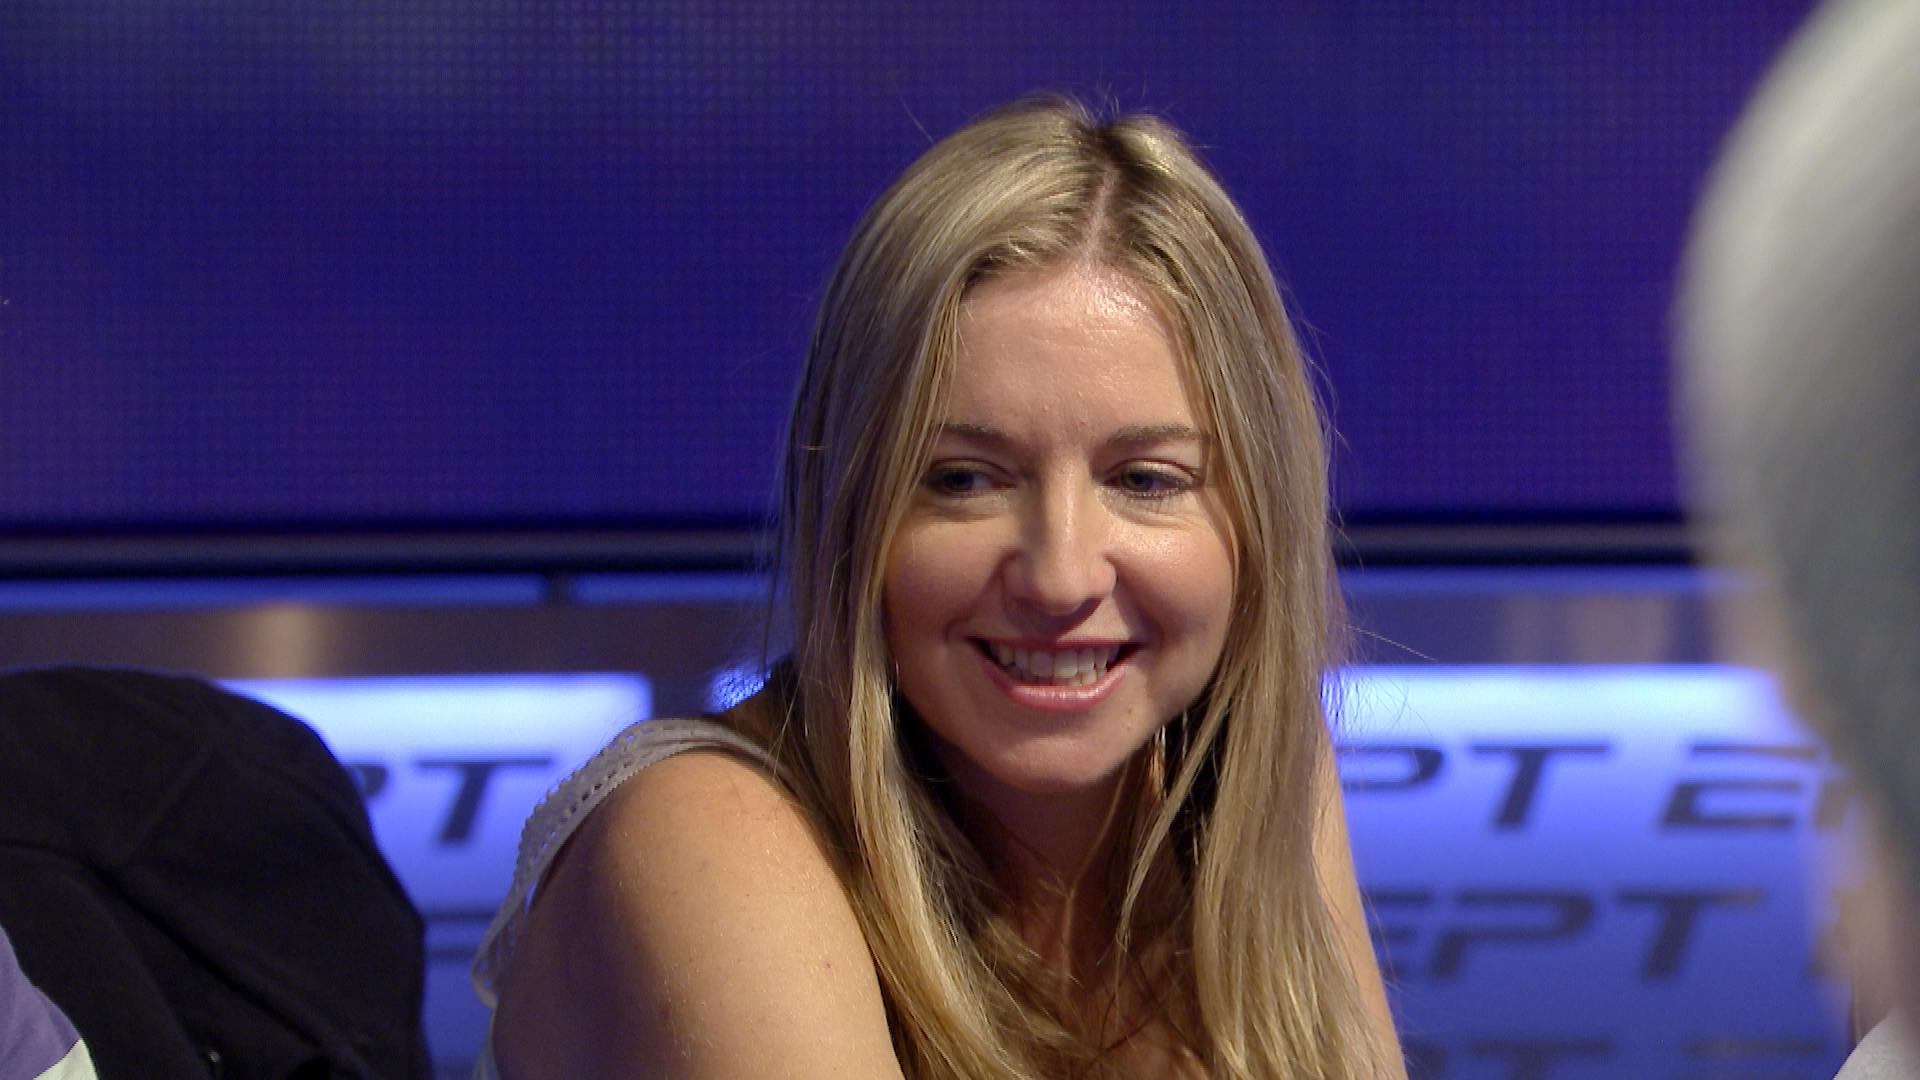 EPT 11 London - Main Event, Episode 1